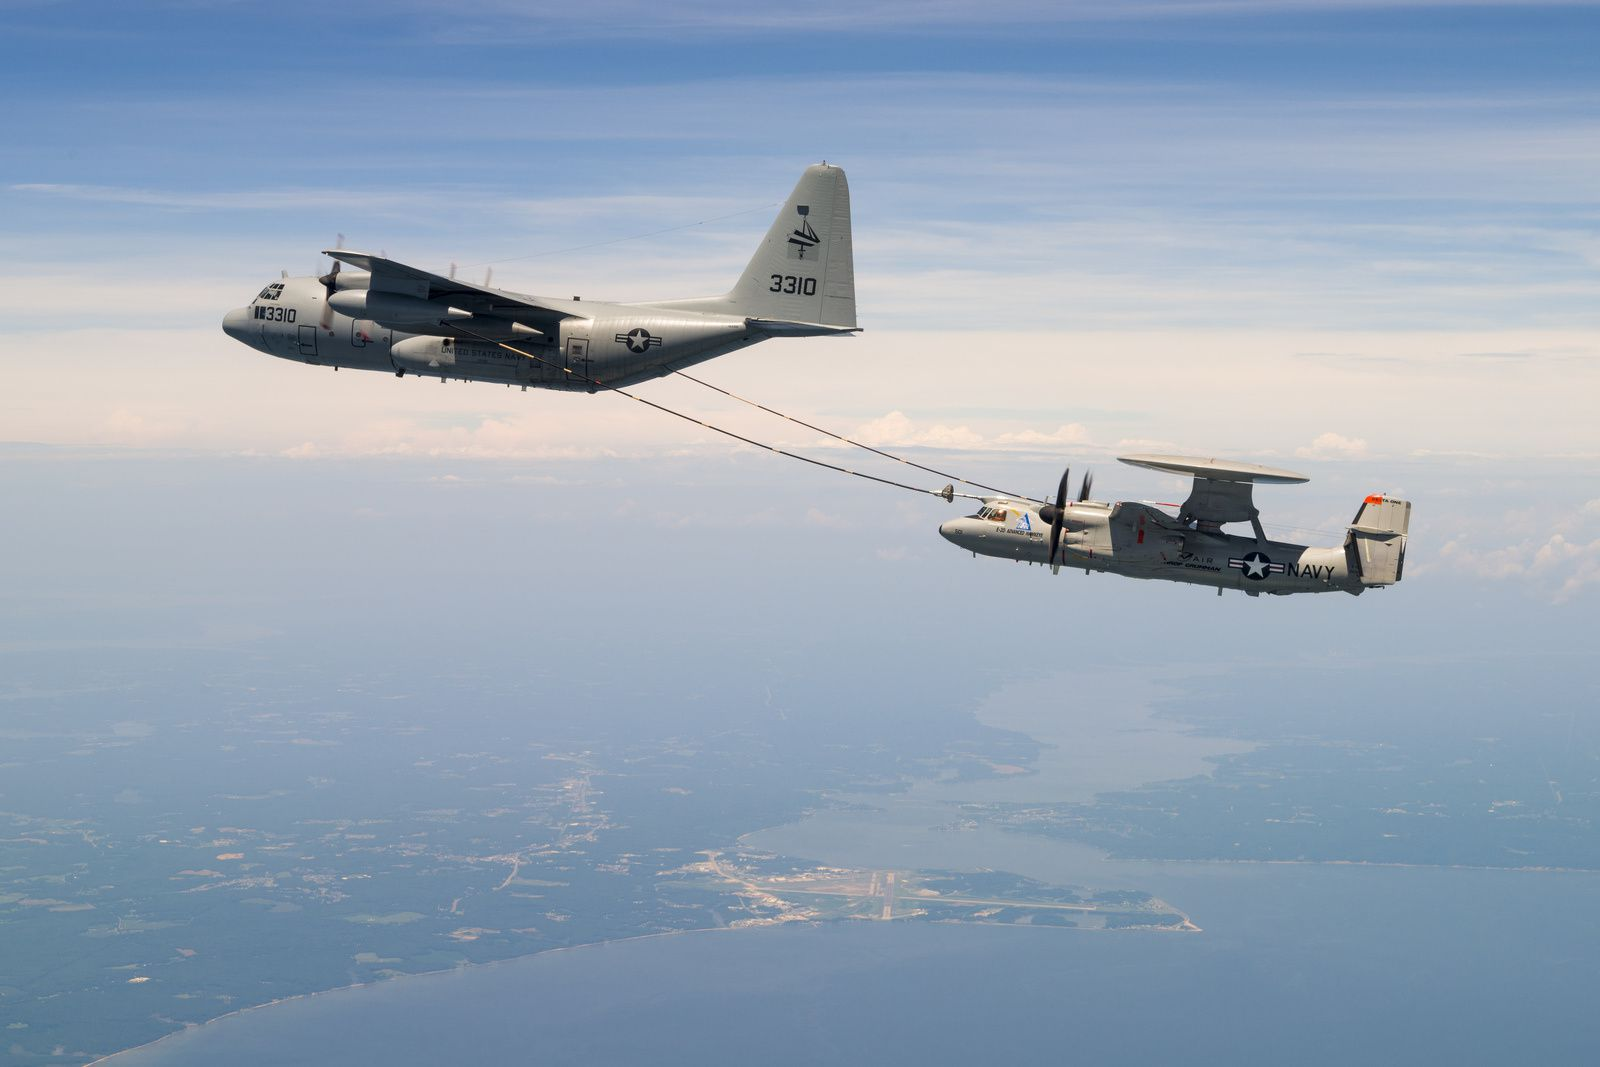 L'E-2D Advanced Hawkeye a effectué son premier ravitaillement en vol